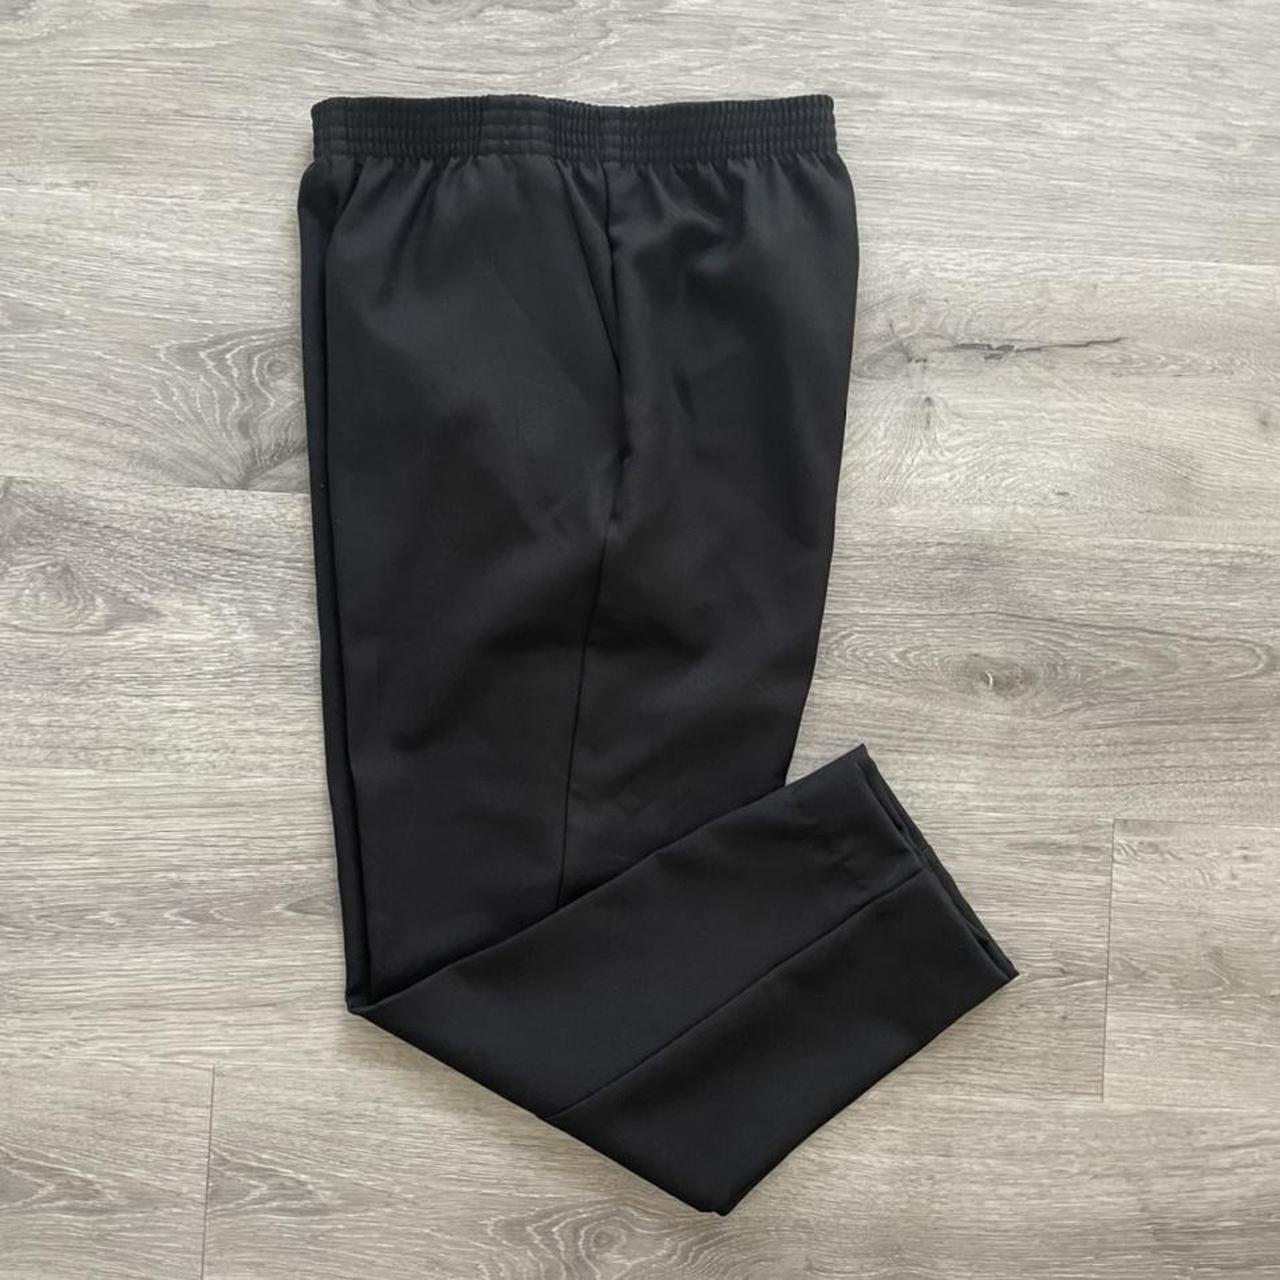 Product Image 1 - DONNKENNY Petite Trousers size 8P